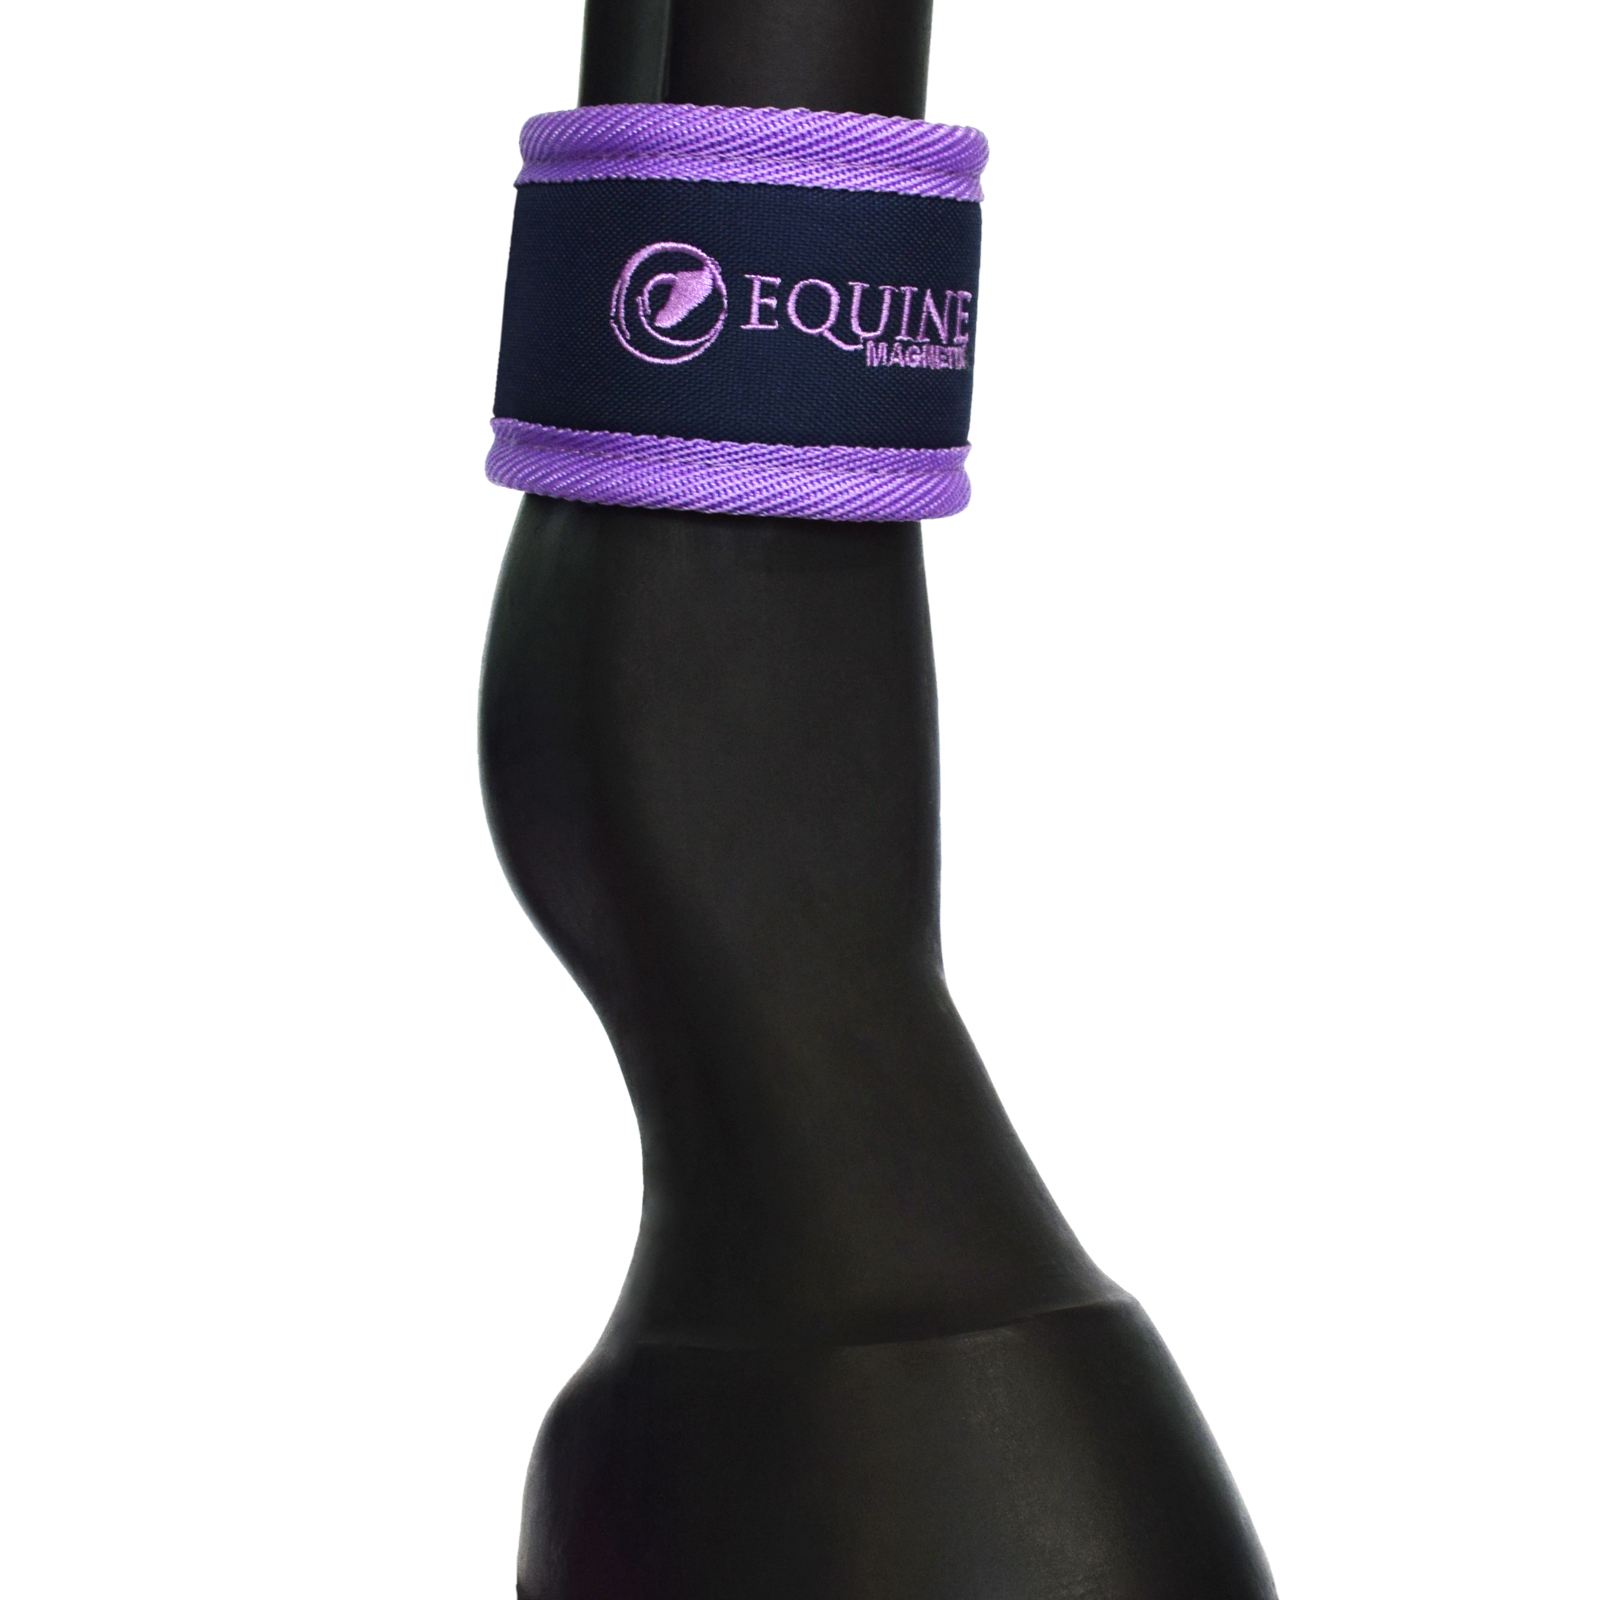 Magnetic horse ankle boots above the fetlock in purple by Equine Magnetix